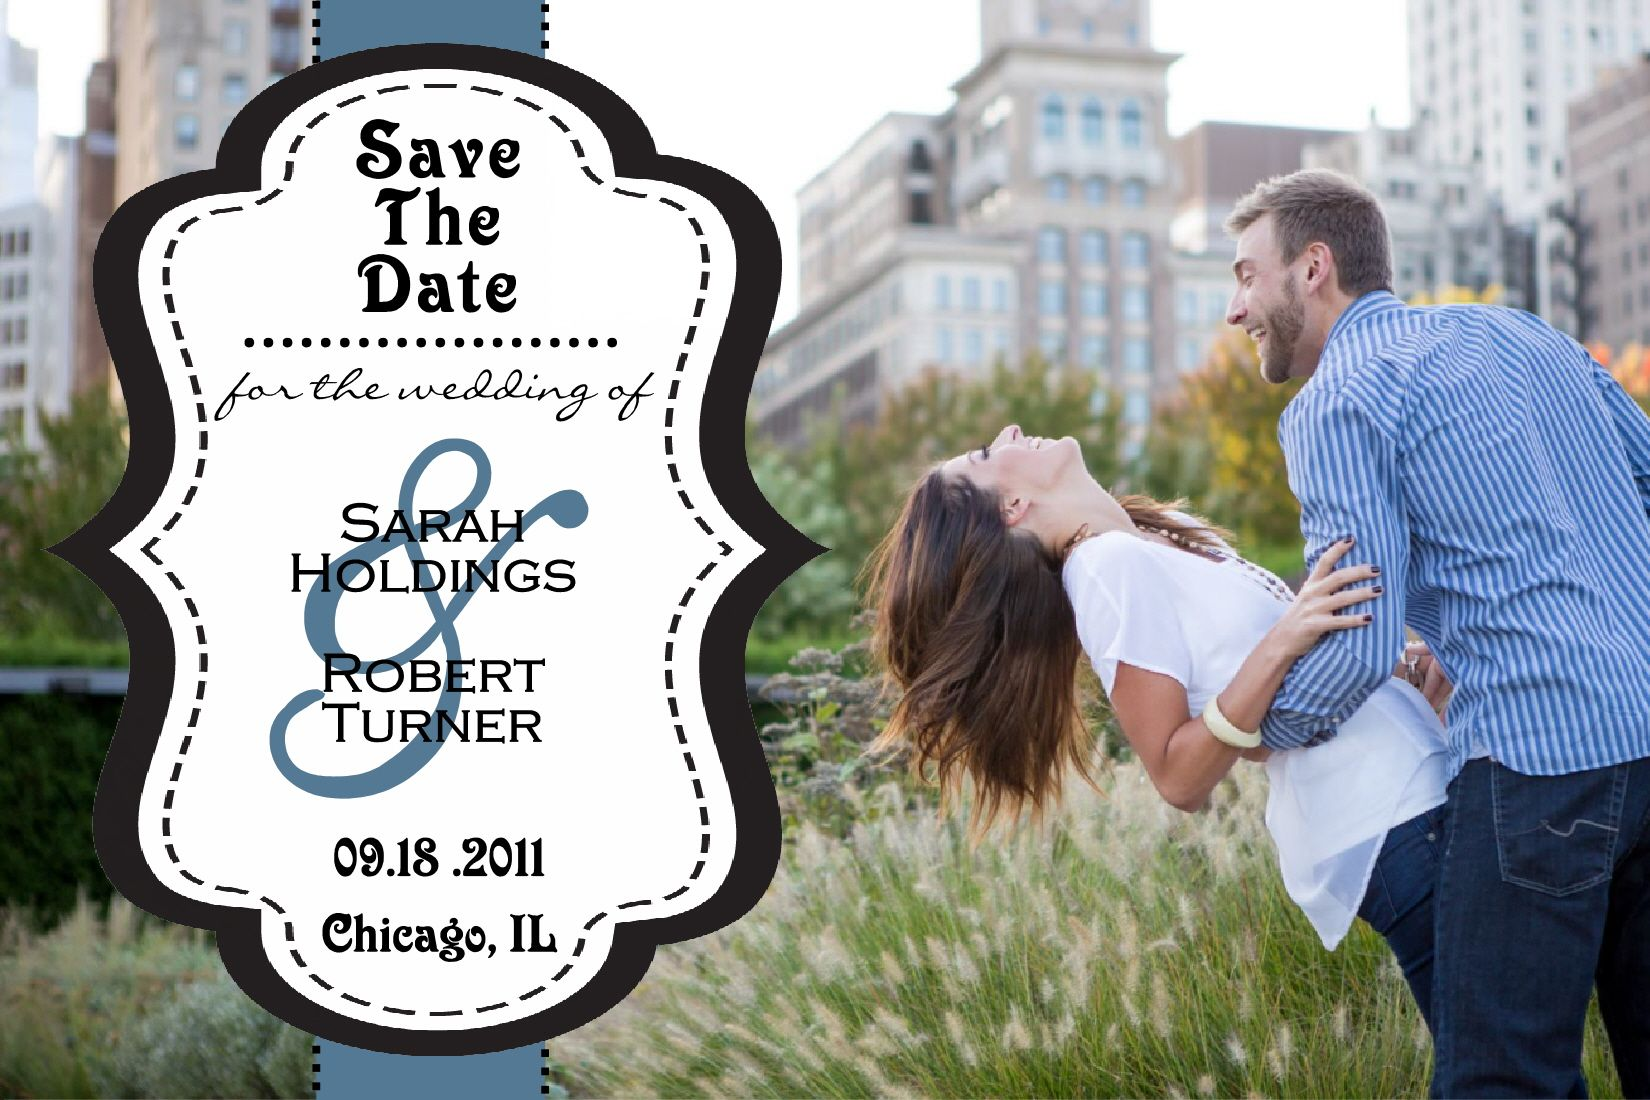 New SAVE THE DATE Designs Are Now Available. More Will Be